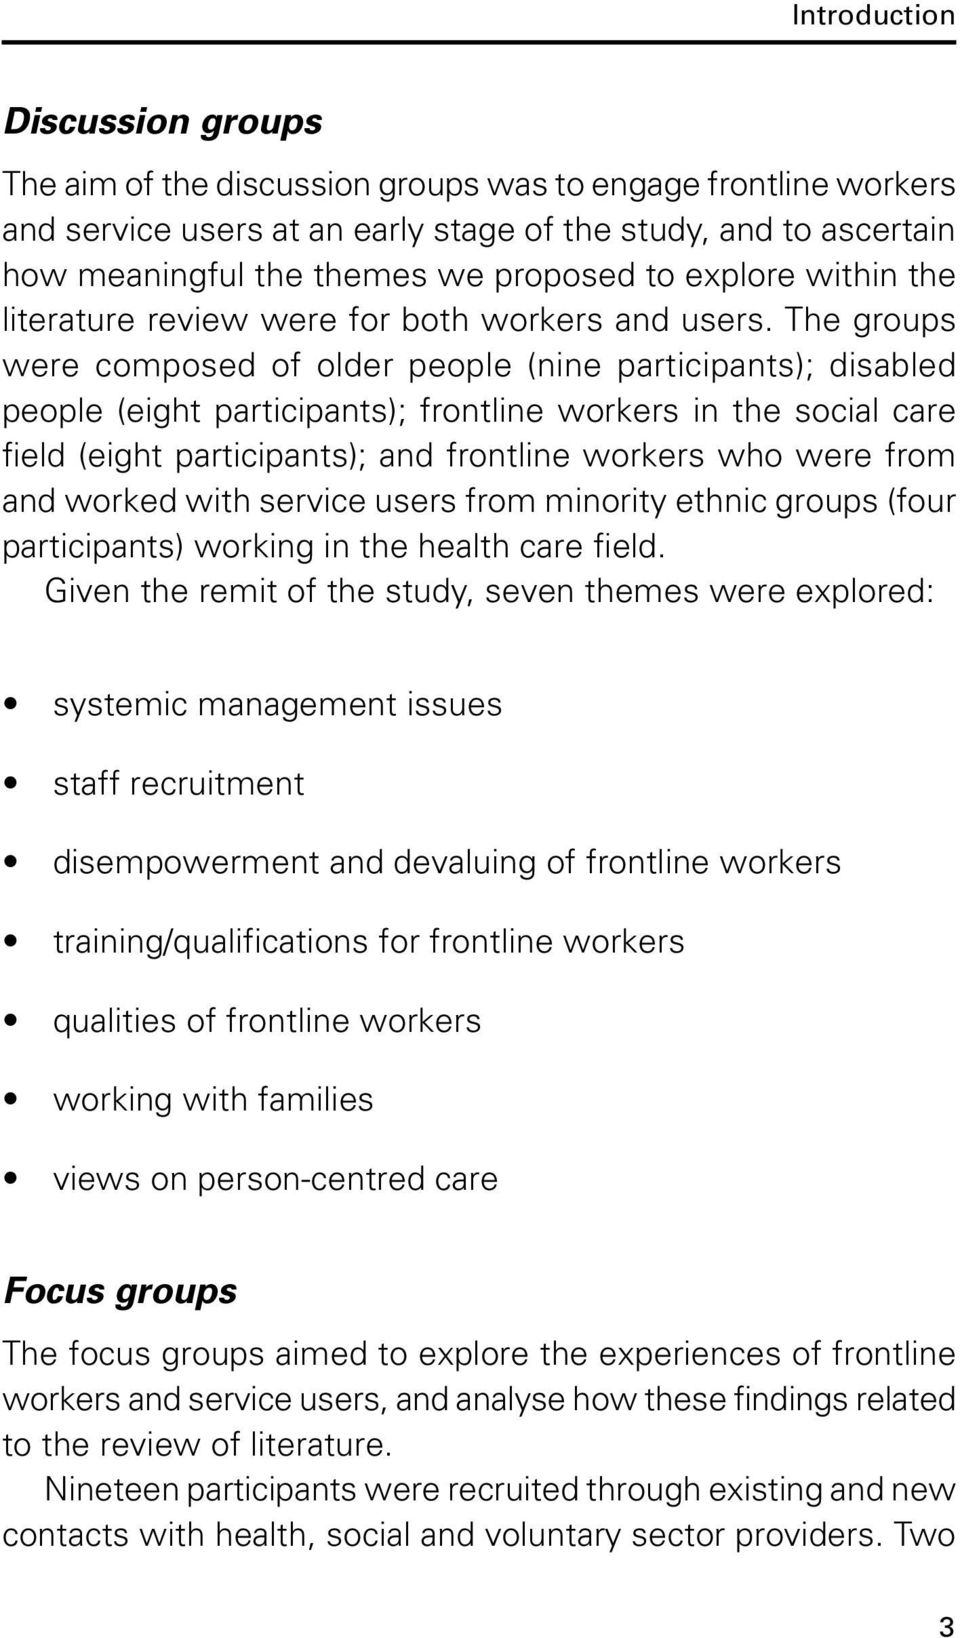 The groups were composed of older people (nine participants); disabled people (eight participants); frontline workers in the social care field (eight participants); and frontline workers who were